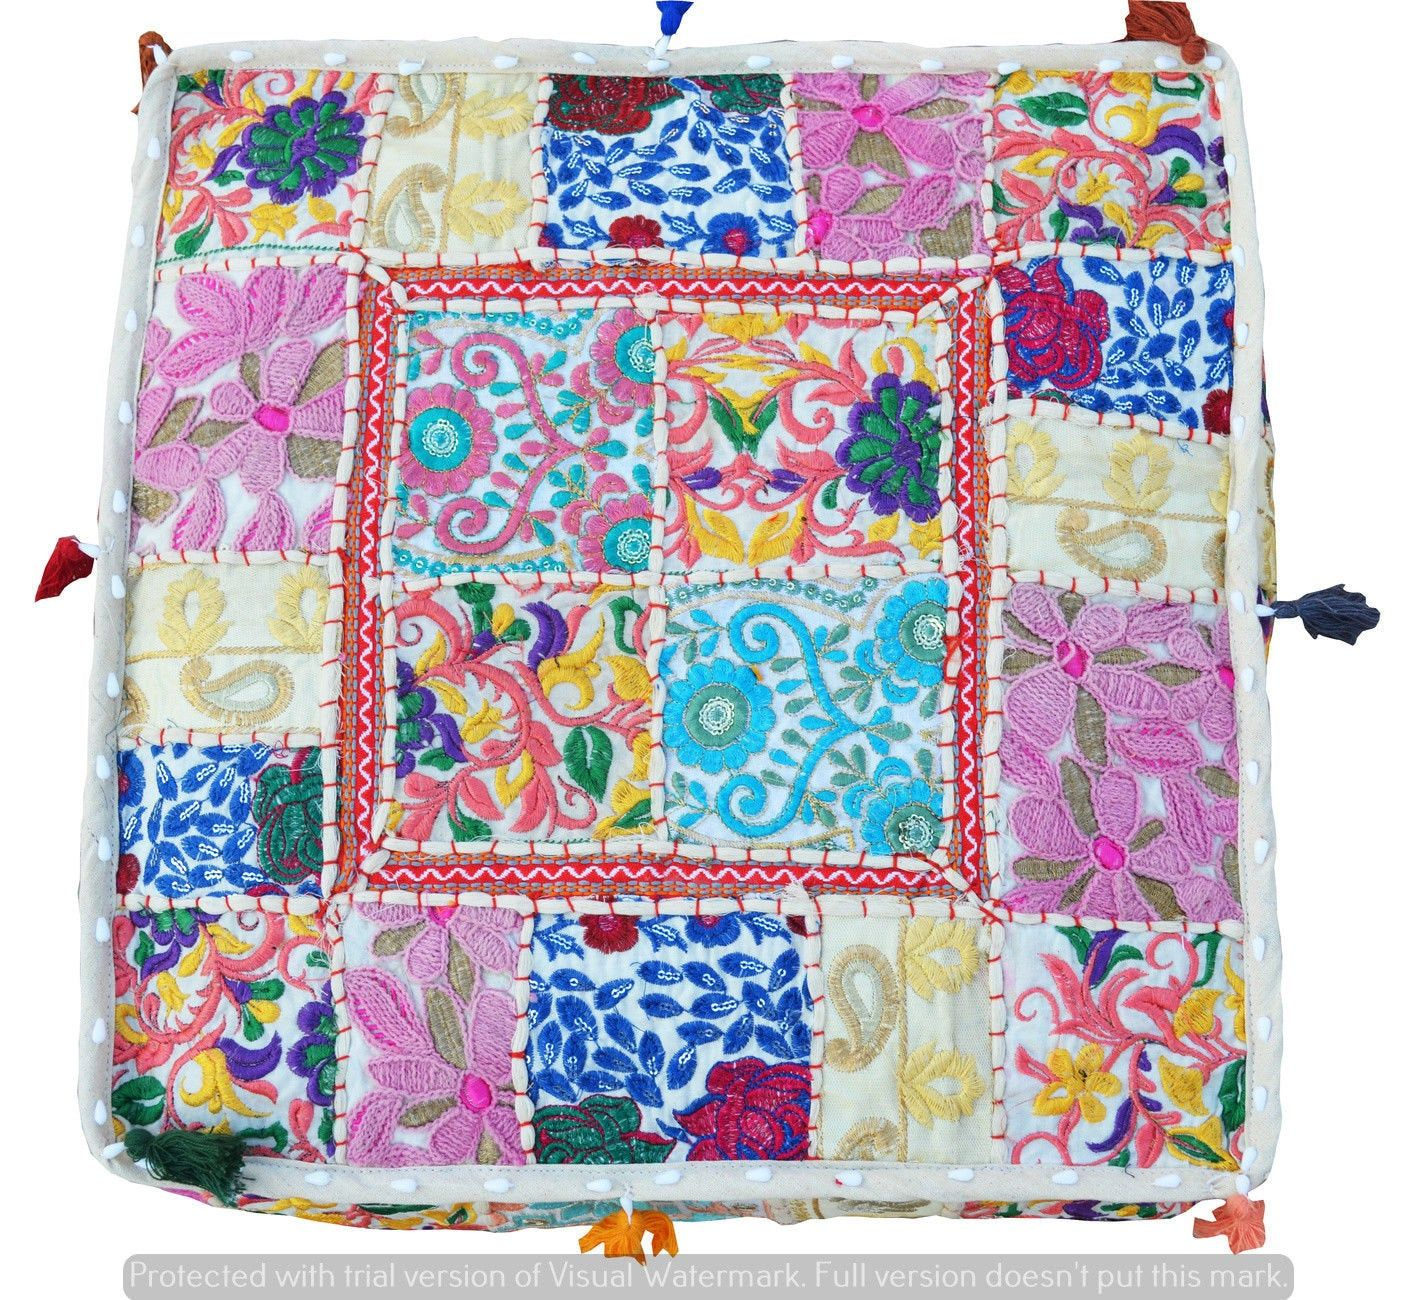 Indian Green Patchwork Large Floor Ottoman Pouf Cushion Pillow Cover Square Pet